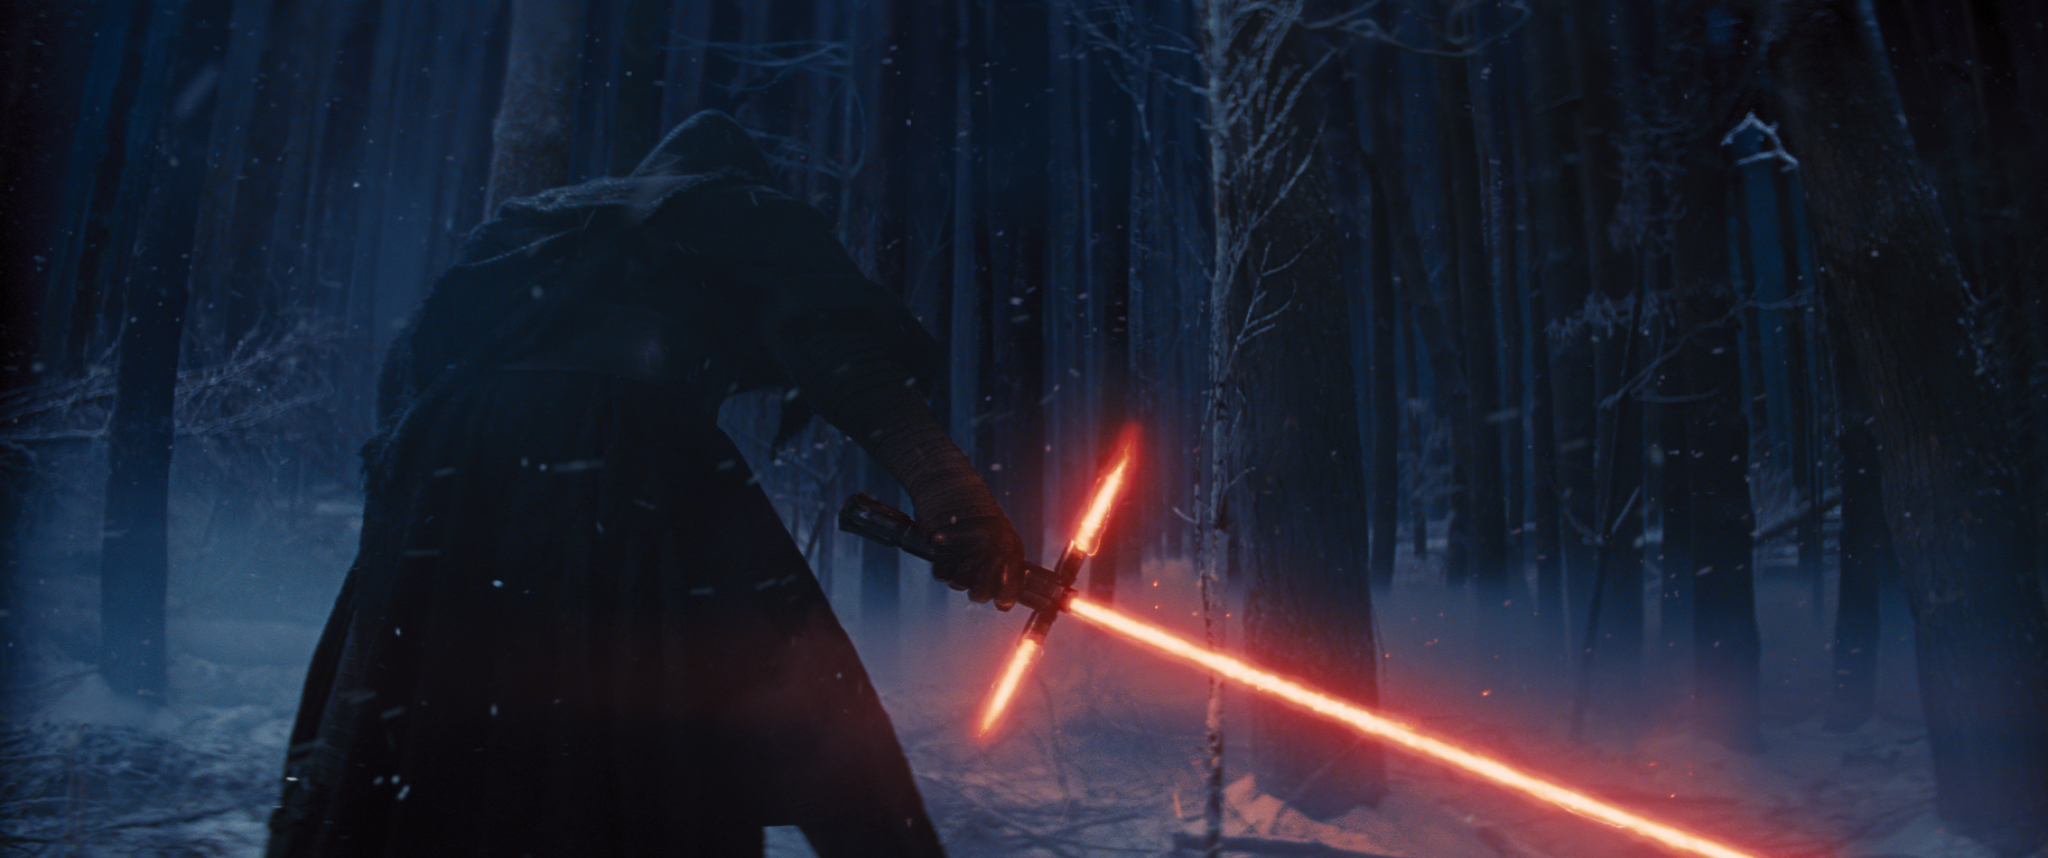 A mysterious figure as seen in the Star Wars: The Force Awakens